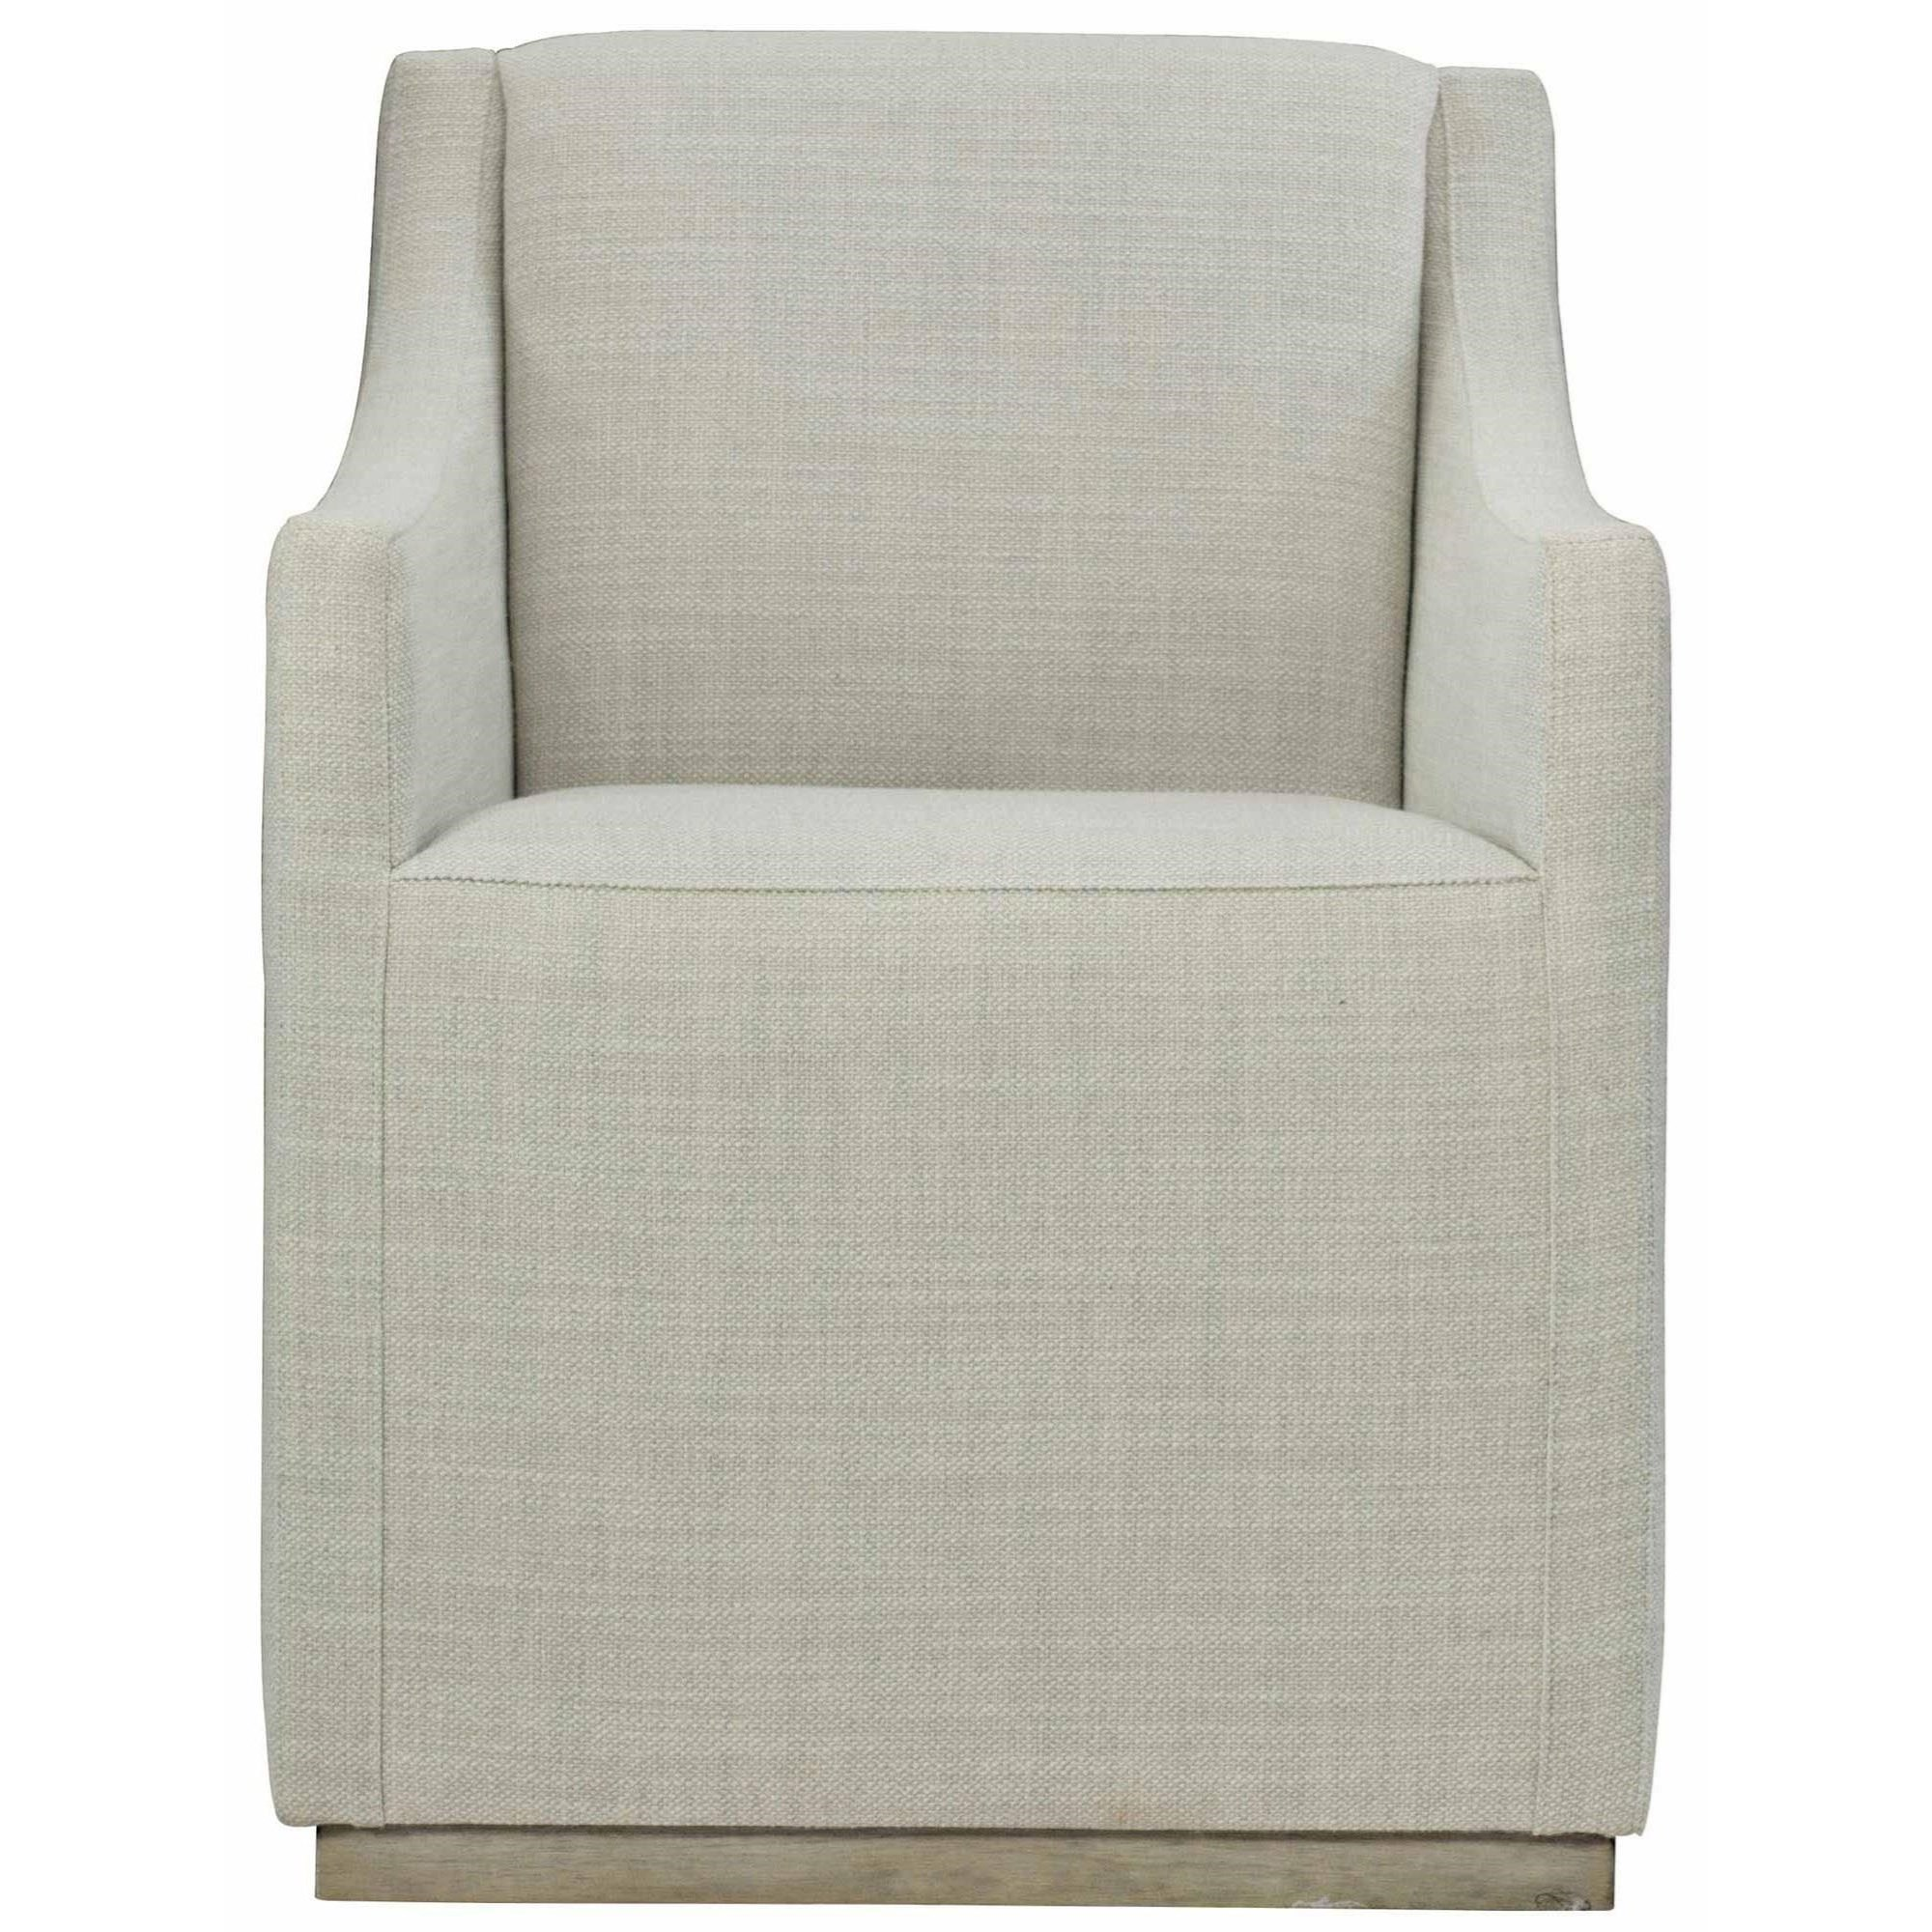 Loft - Highland Park Casey Customizable Uph Dining Arm Chair by Bernhardt at Baer's Furniture